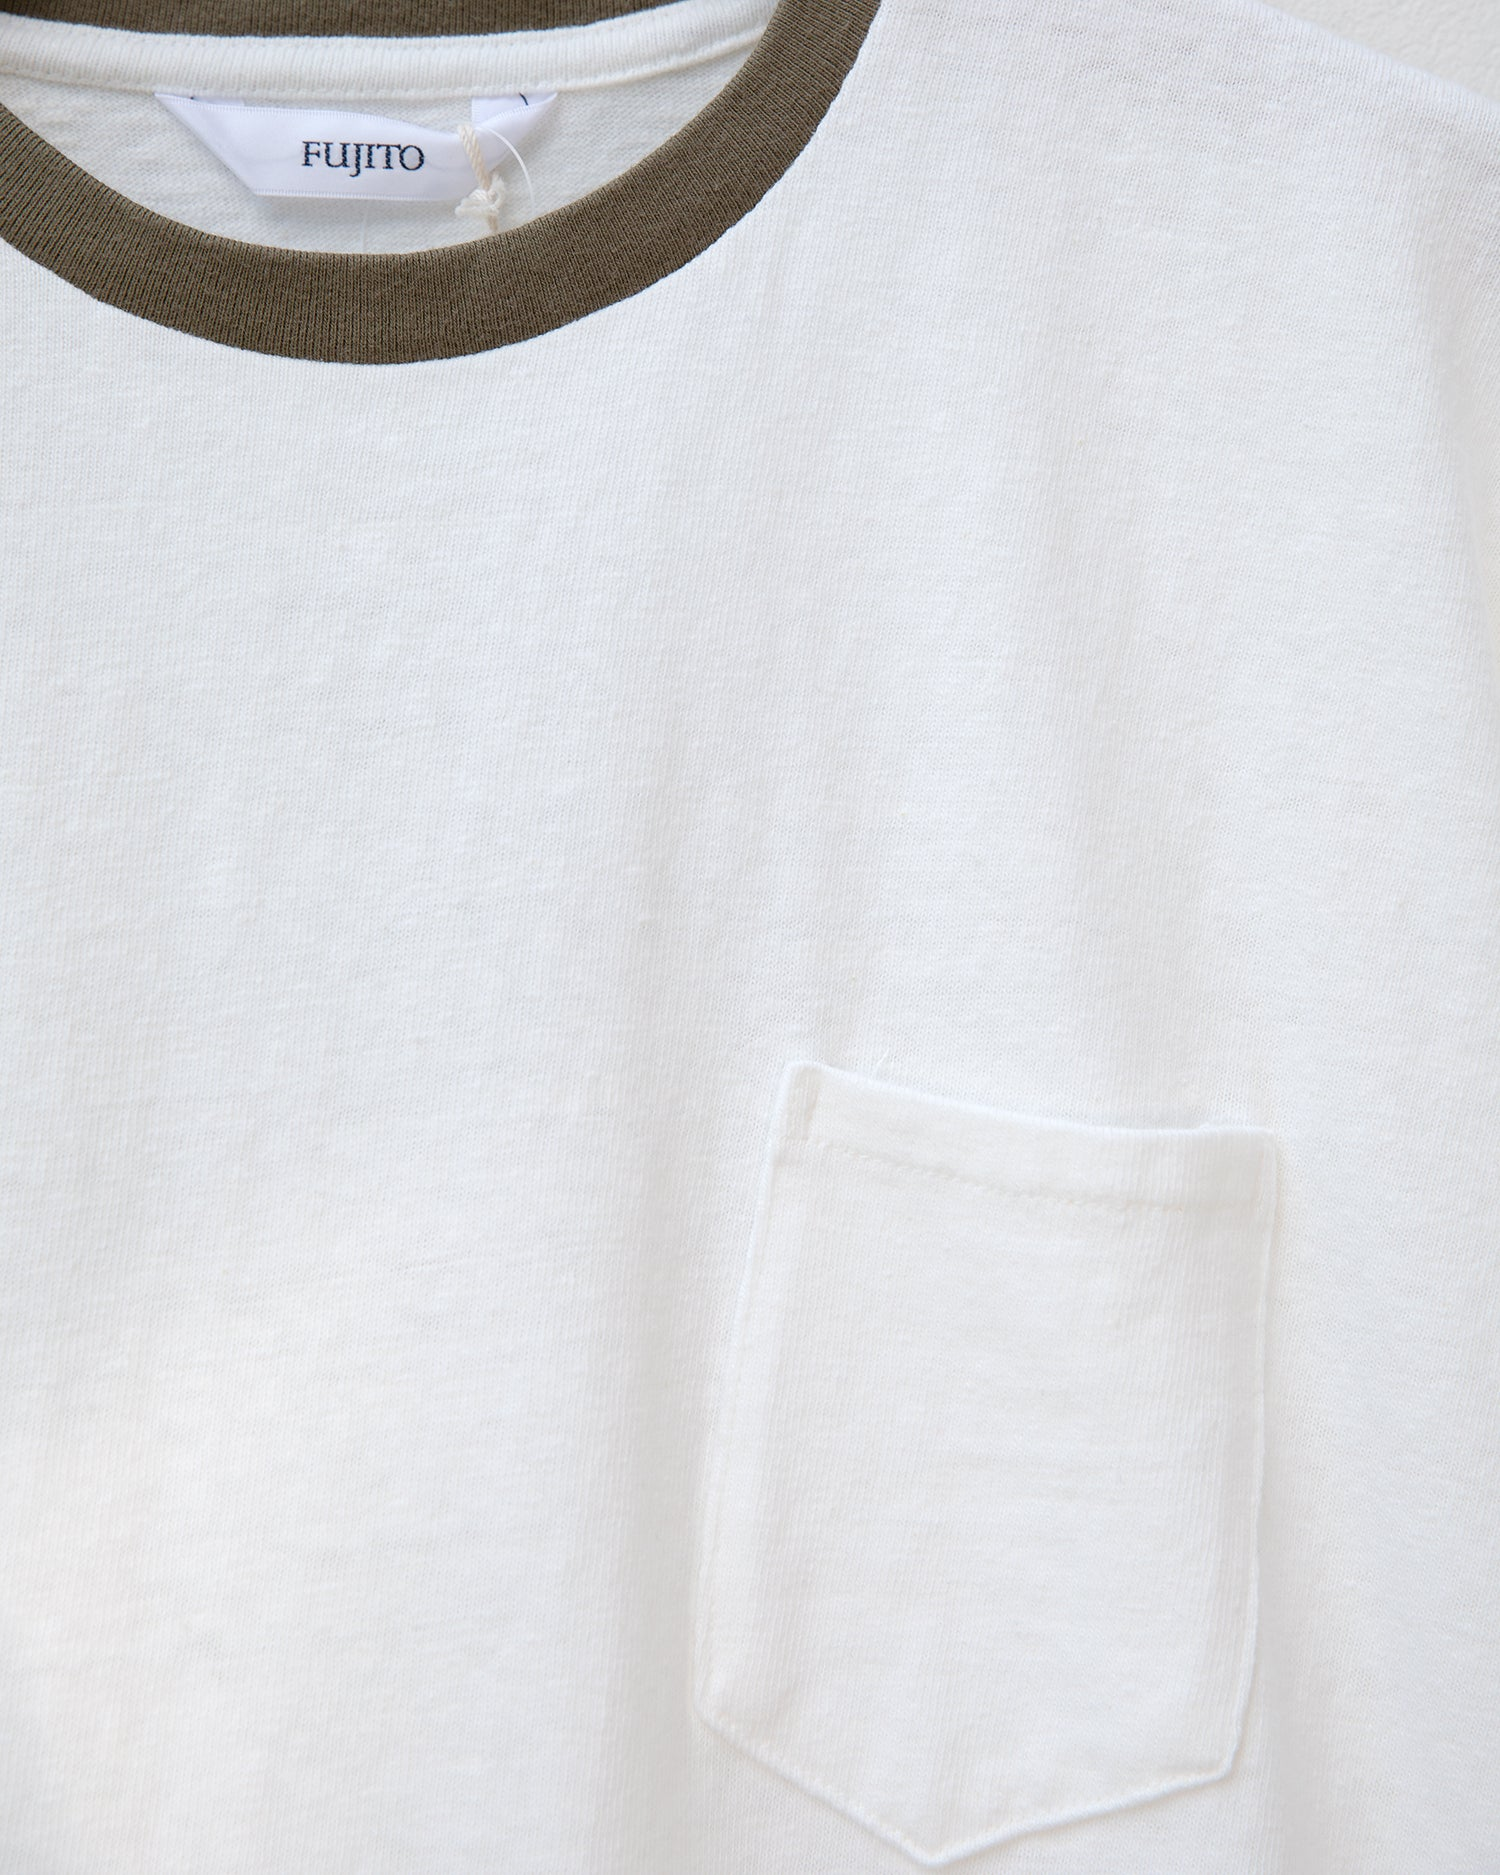 Pocket T-Shirt - White / Khaki